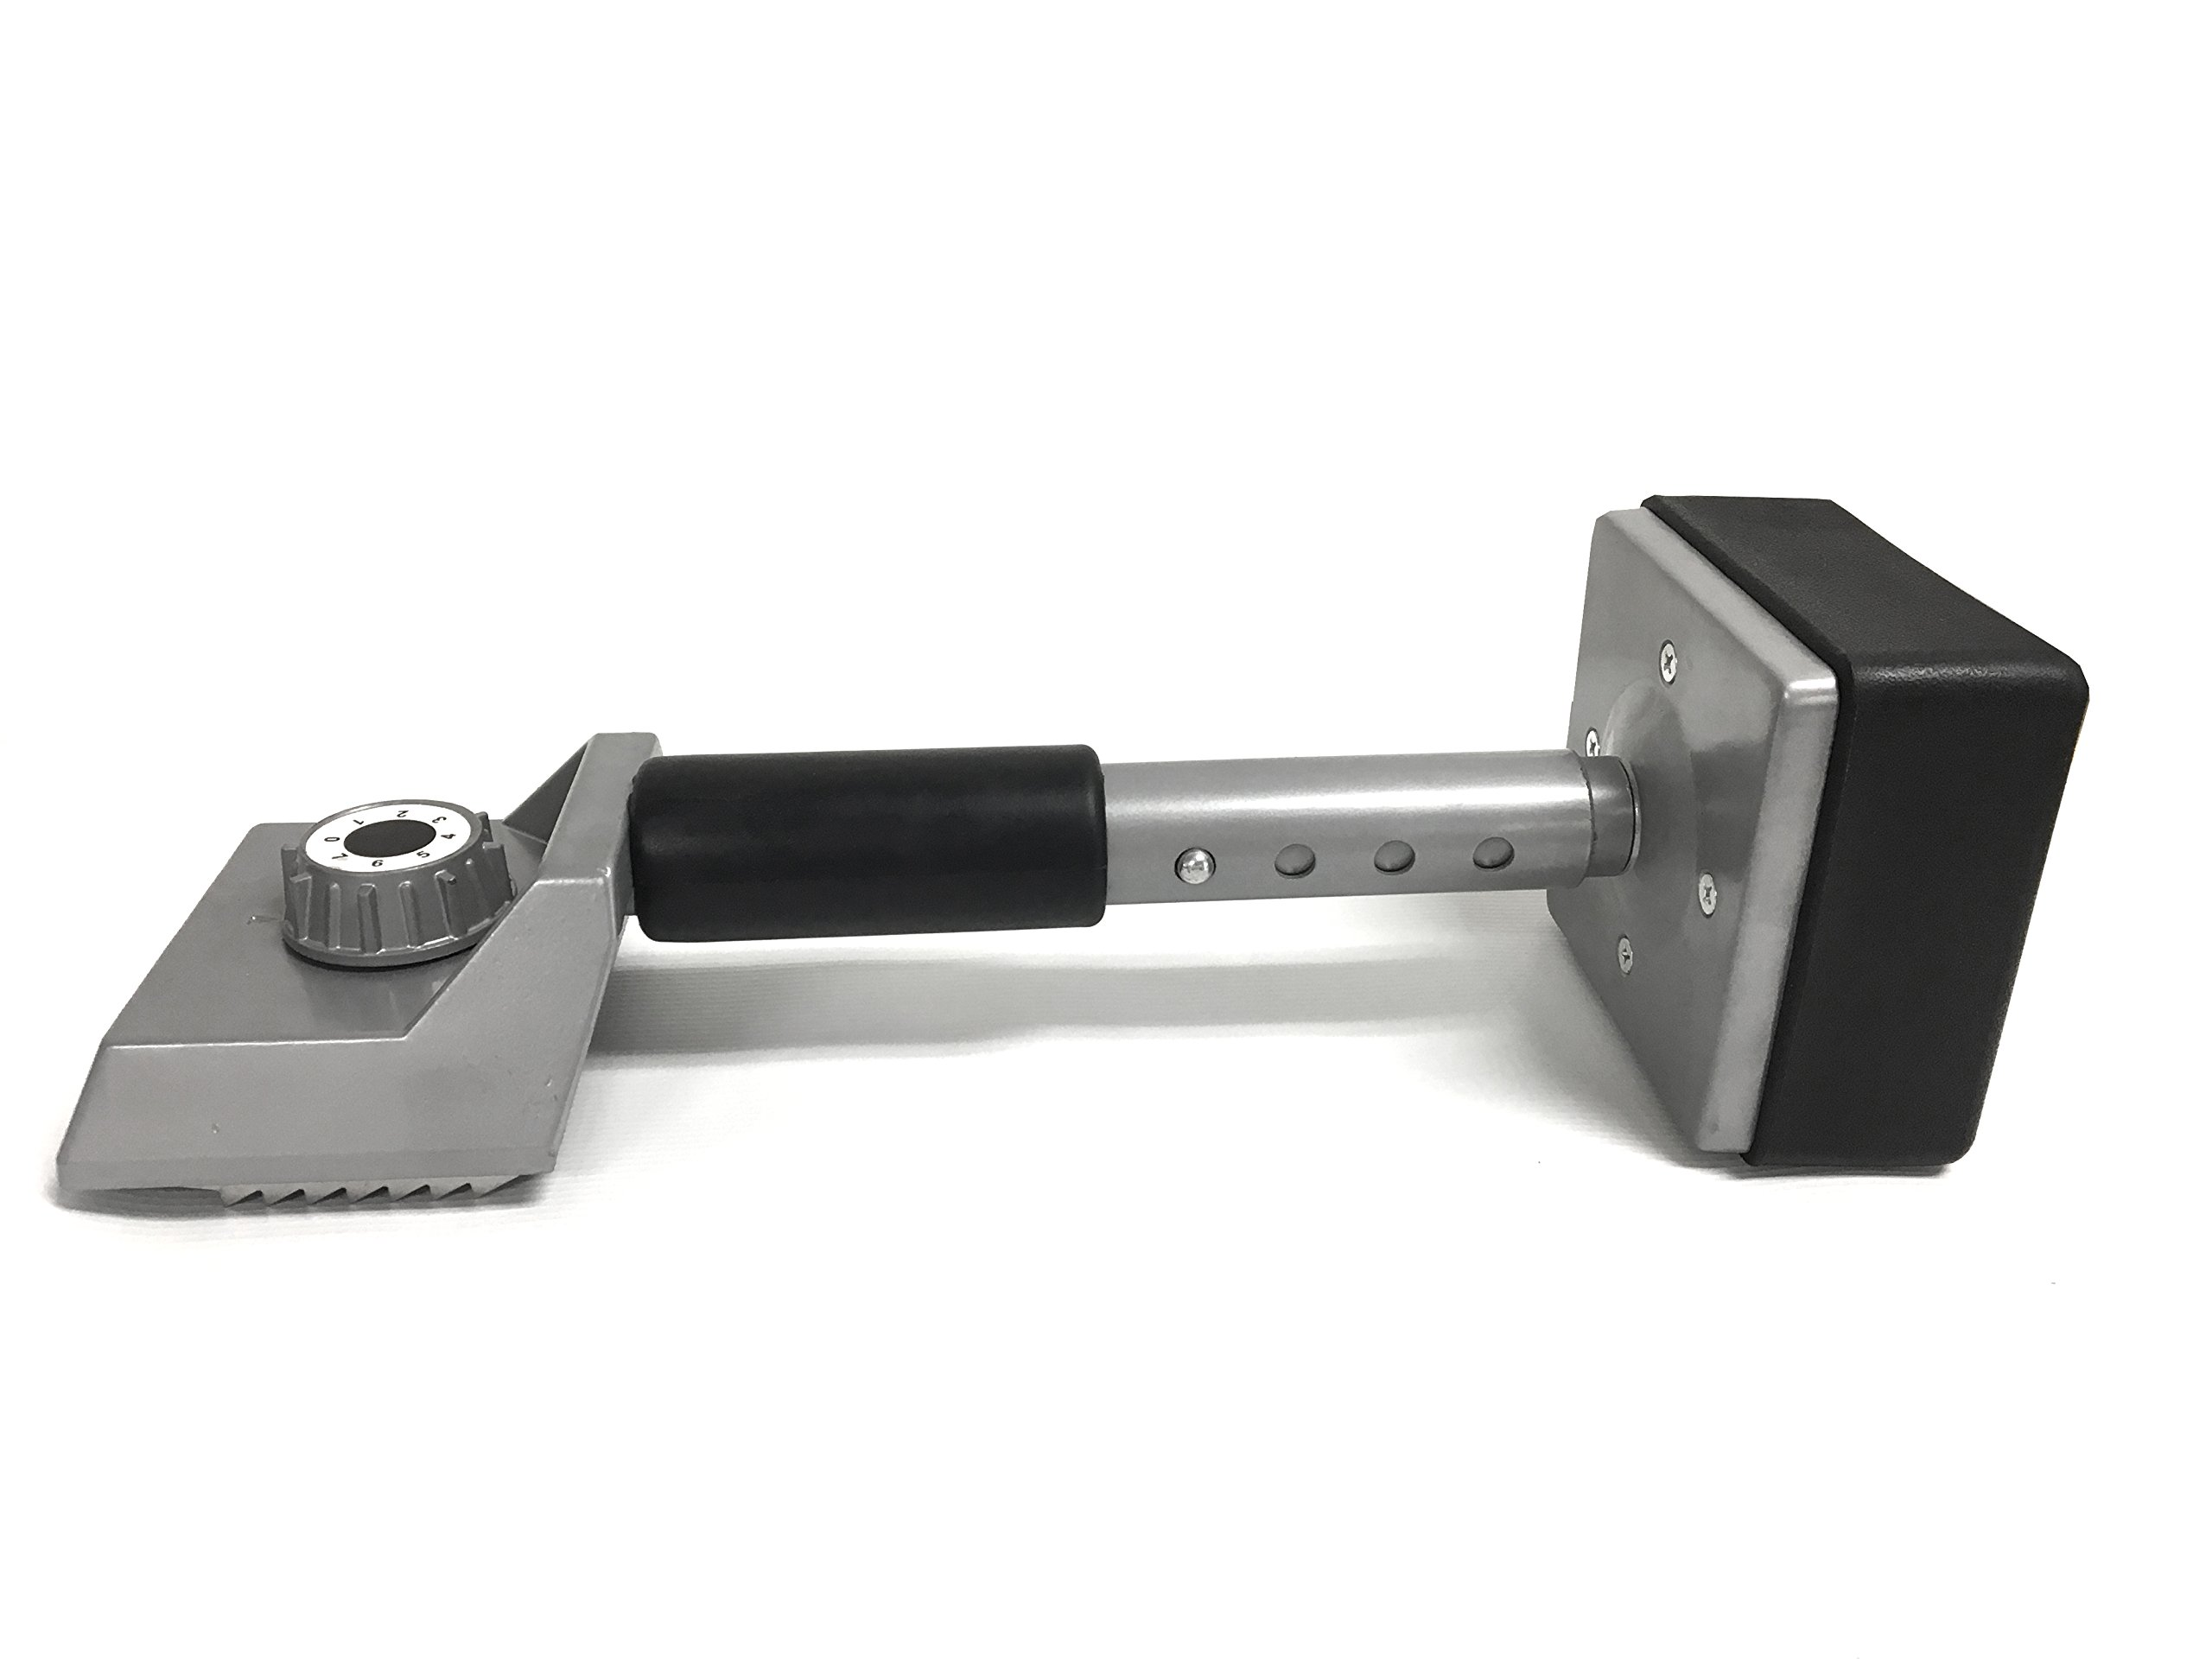 MaxWorks 80742 Carpet Stretcher Knee Kicker with Telescoping Handle, Regular, Silver by MaxWorks